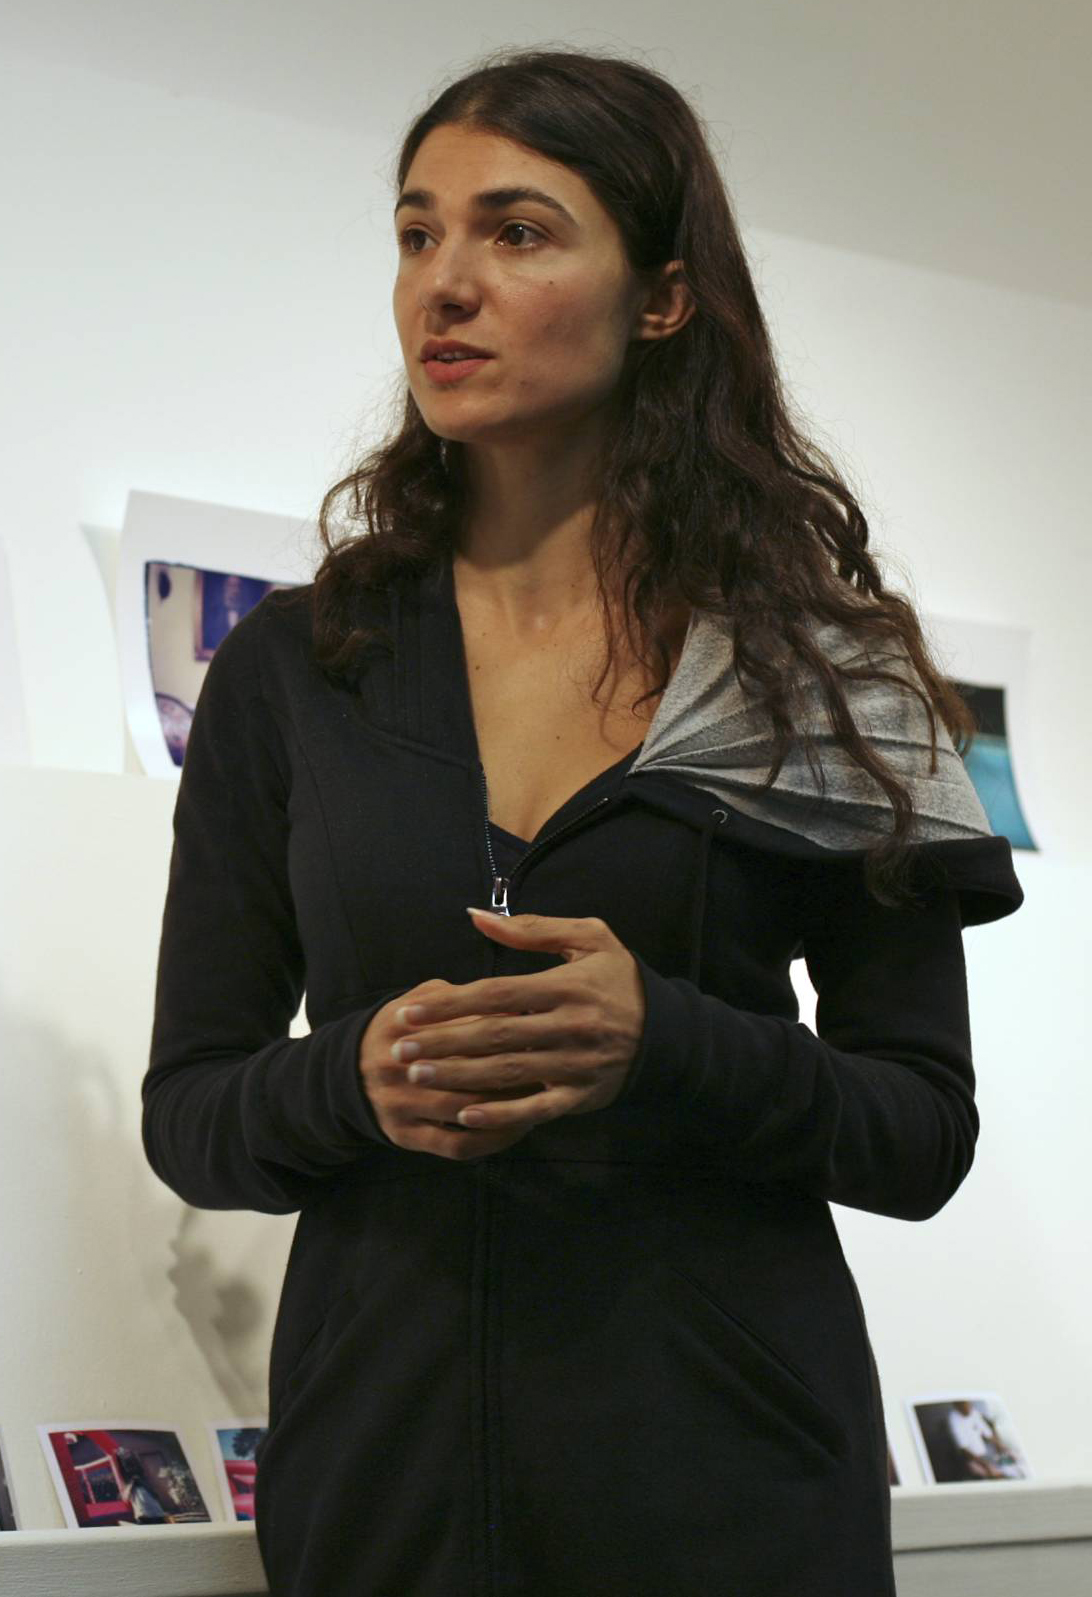 Image of Elinor Carucci from Wikidata